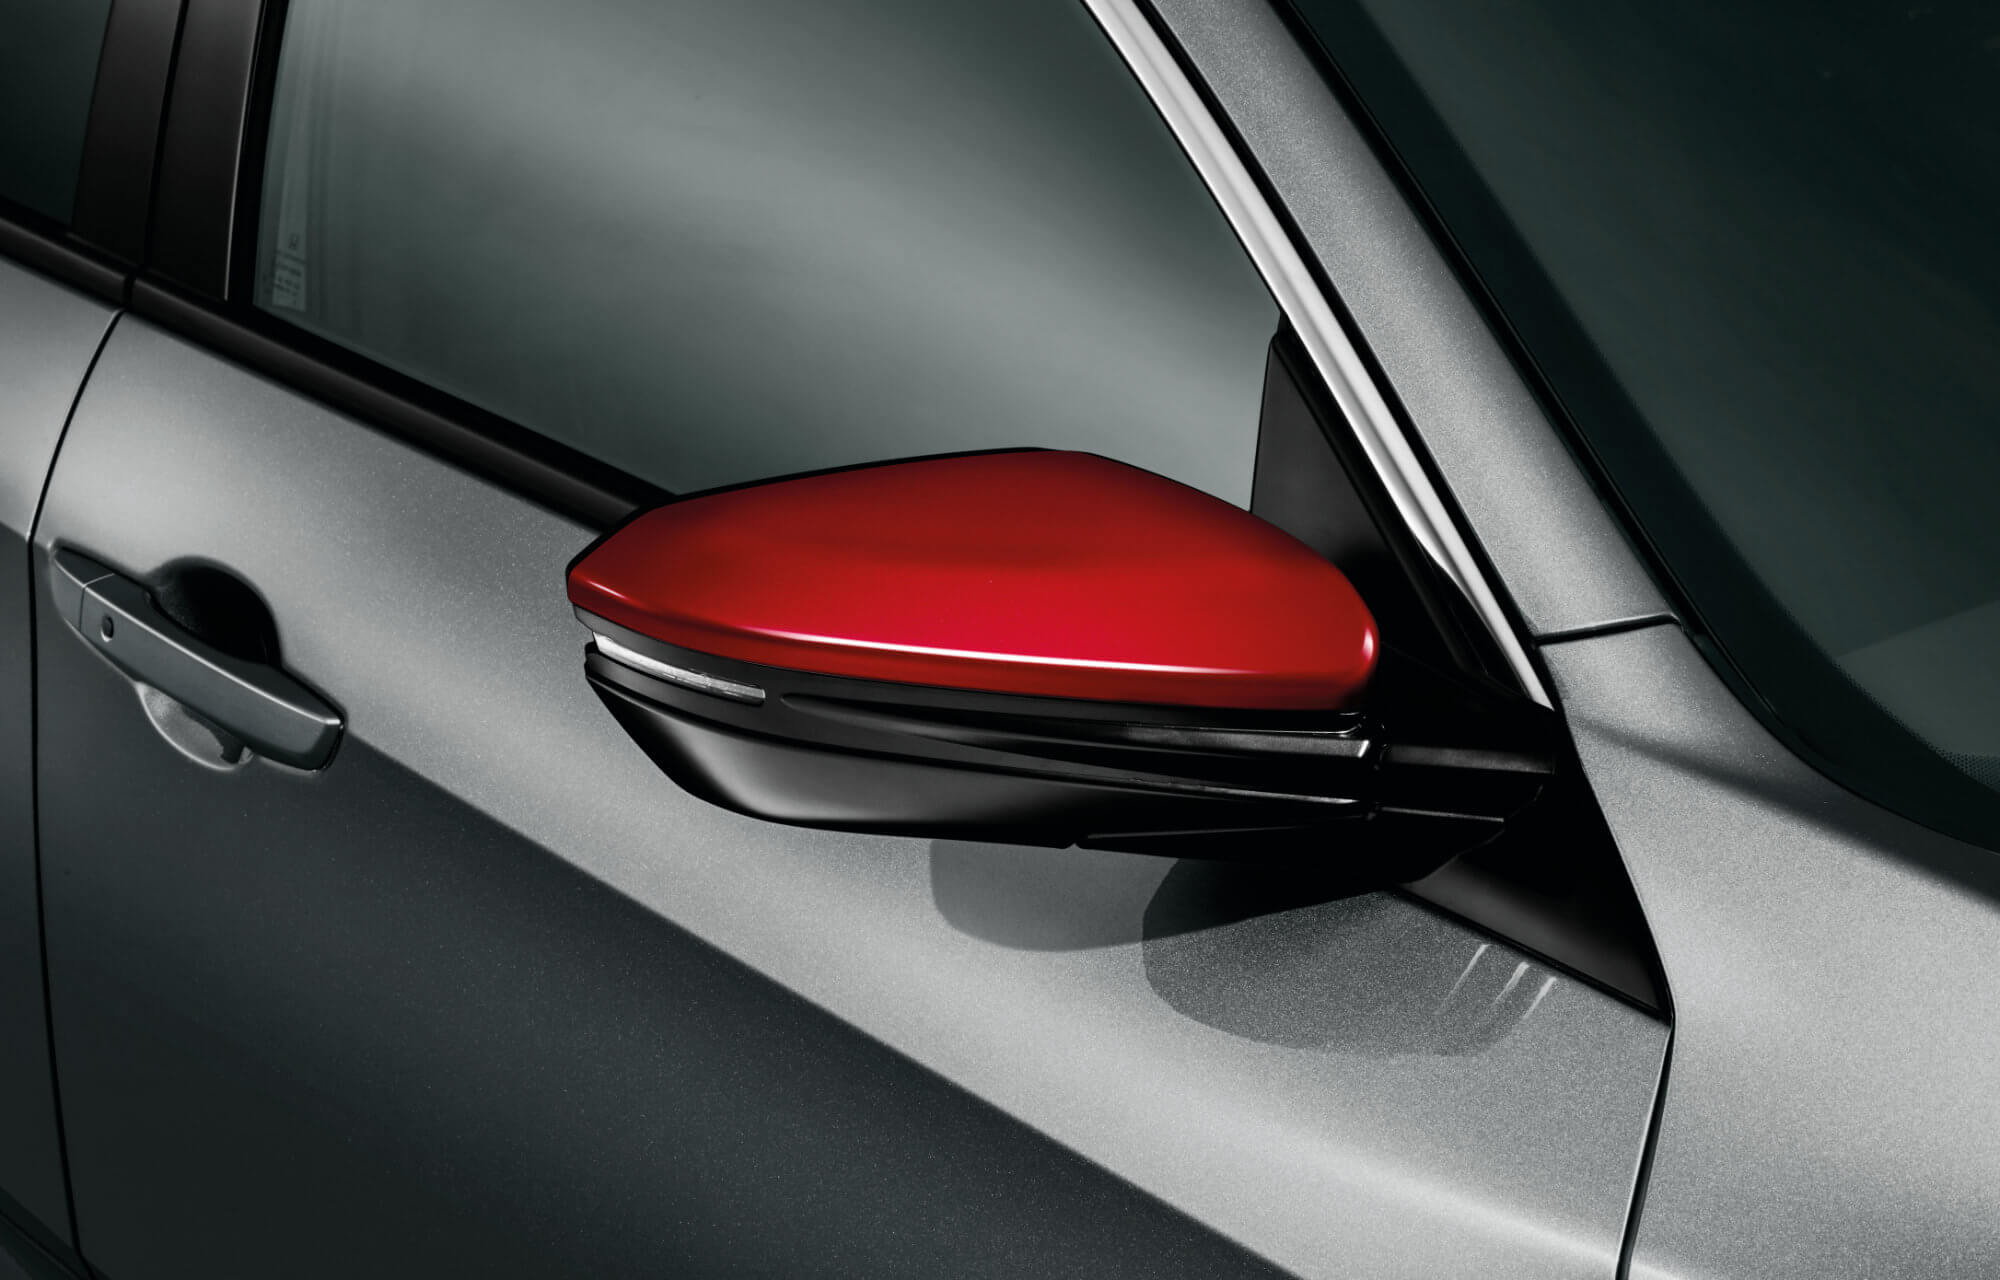 Honda Civic 5 Door Mirror Caps - Rallye Red